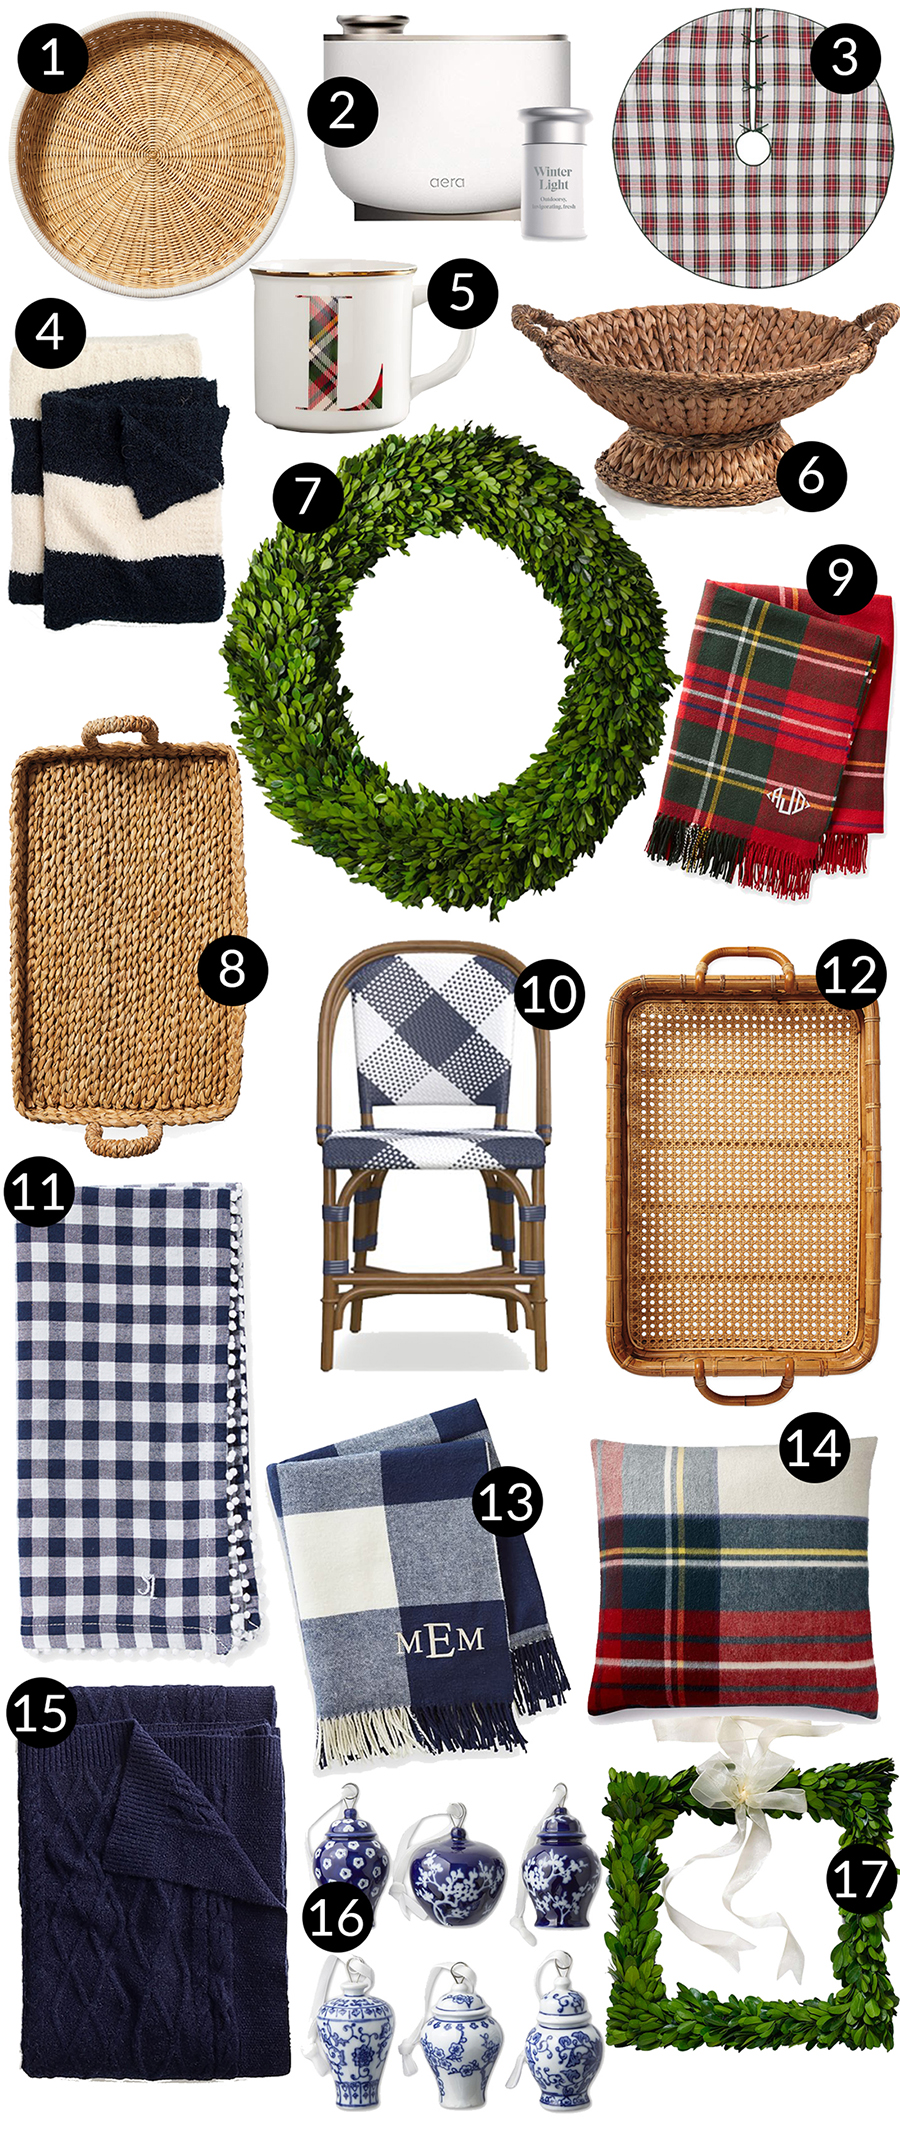 Preppy Holiday Home Gift Guide & Area